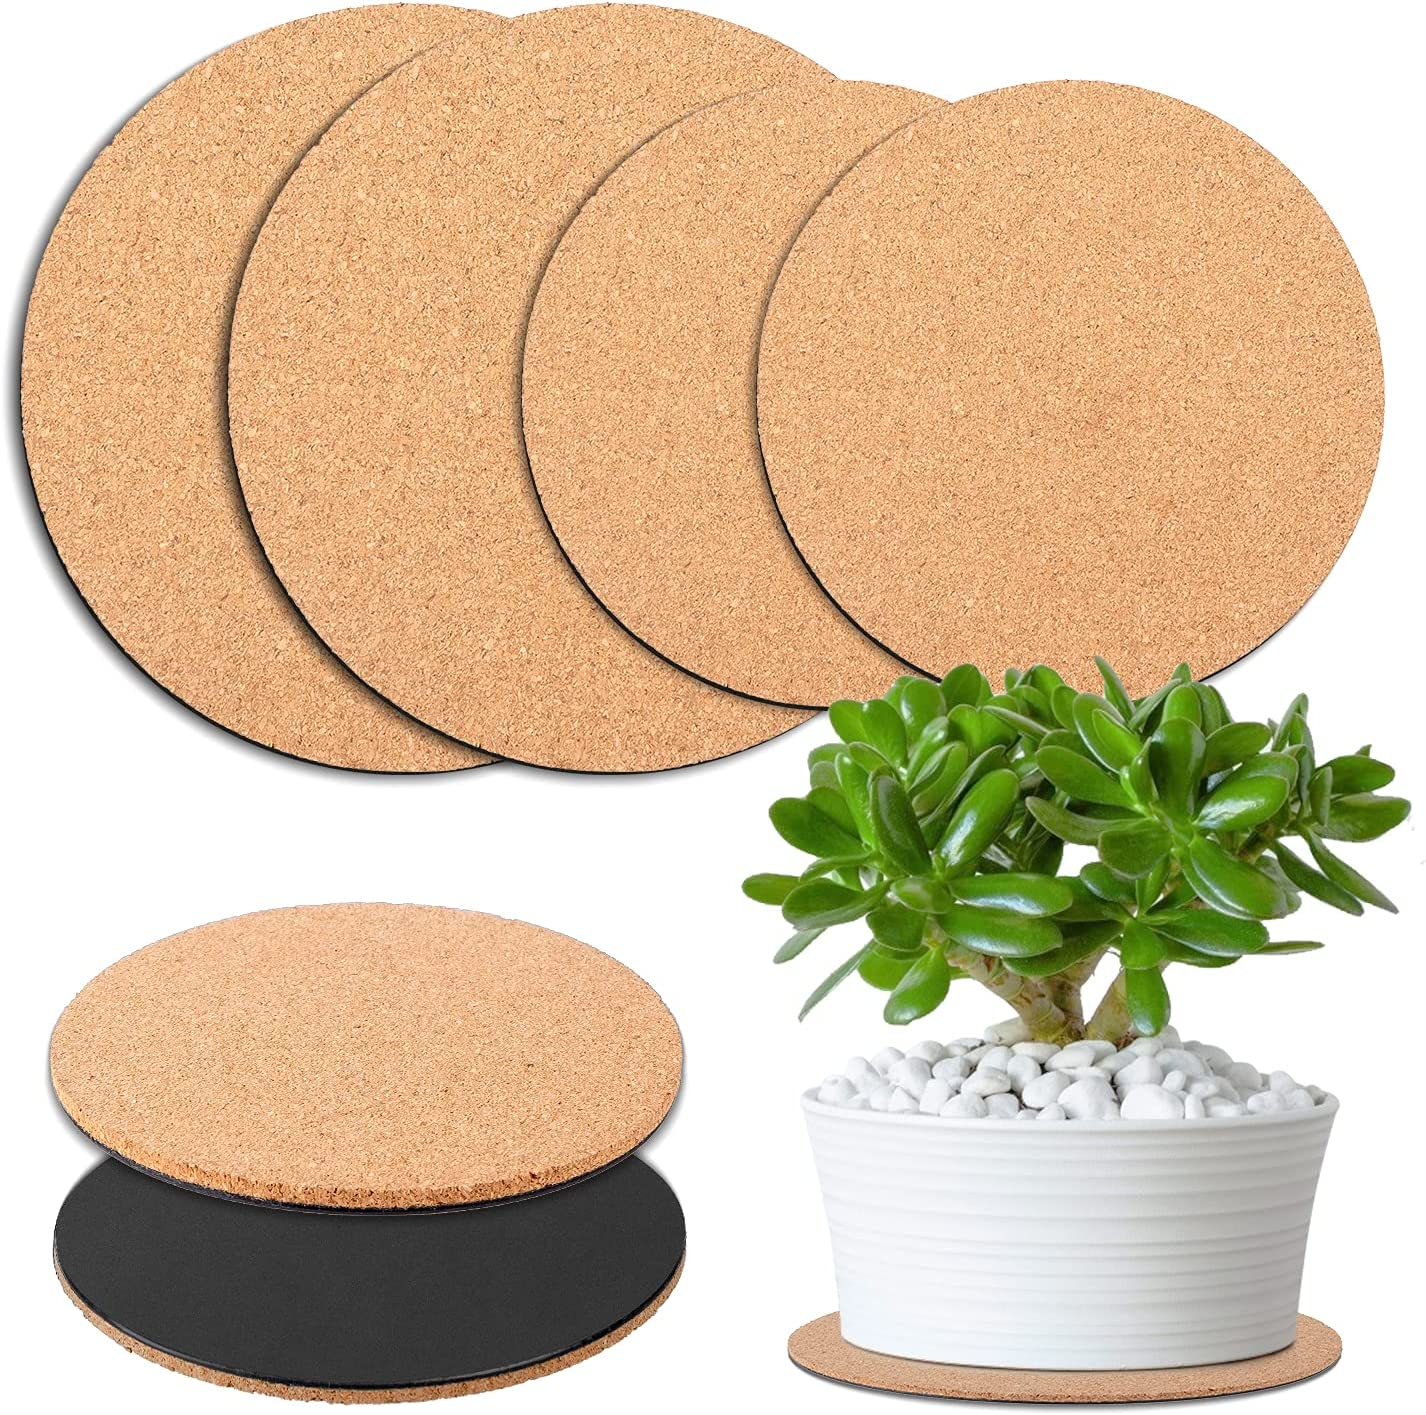 BEATURE 6 Pcs Cork Plant Mat Plastic Plant Mat Round Plate Pad for Courtyard, Pot Mat, Indoor, Garden, and DIY Craft Project (6-Inchs, 8-Inchs, 10-Inchs)